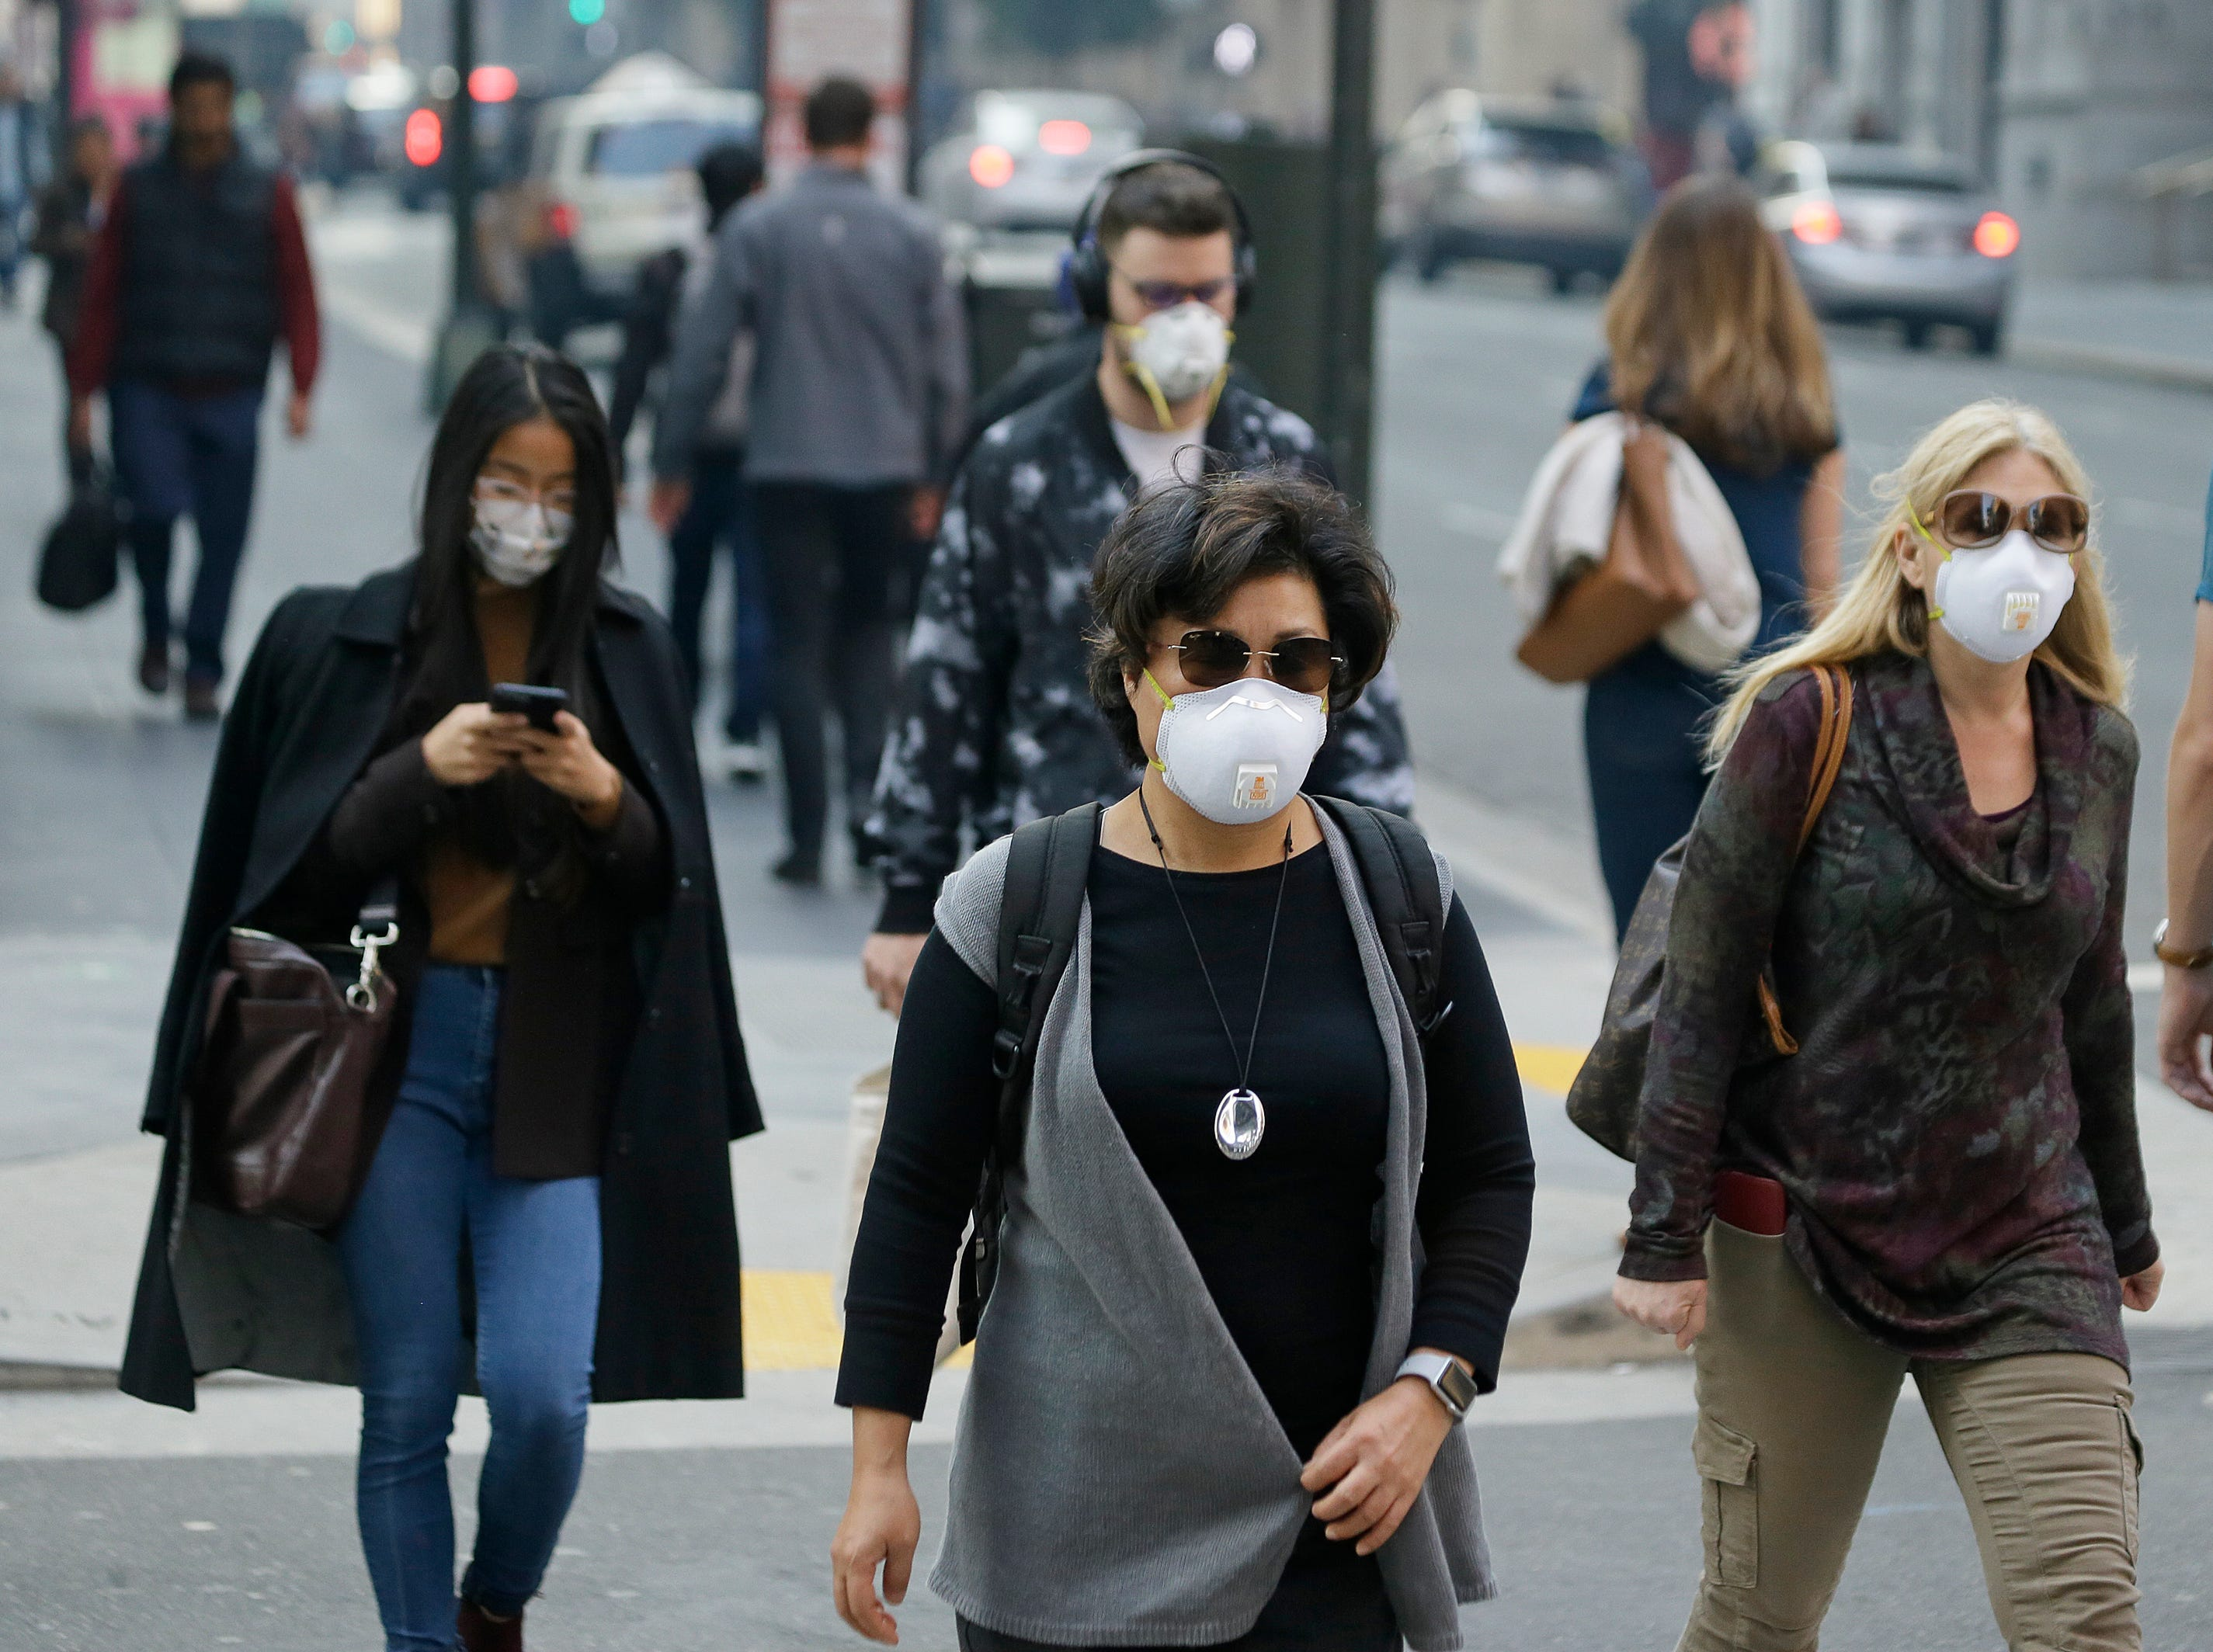 People wear masks while walking through the Financial District in the smoke-filled air Friday, Nov. 9, 2018, in San Francisco. Authorities have issued an unhealthy air quality alert for parts of the San Francisco Bay Area as smoke from a massive wildfire drifts south, polluting the air. Officials say the thousands of structures in the town of Paradise, 180 miles northeast of San Francisco, were destroyed by the blaze that has charred 110 square miles.